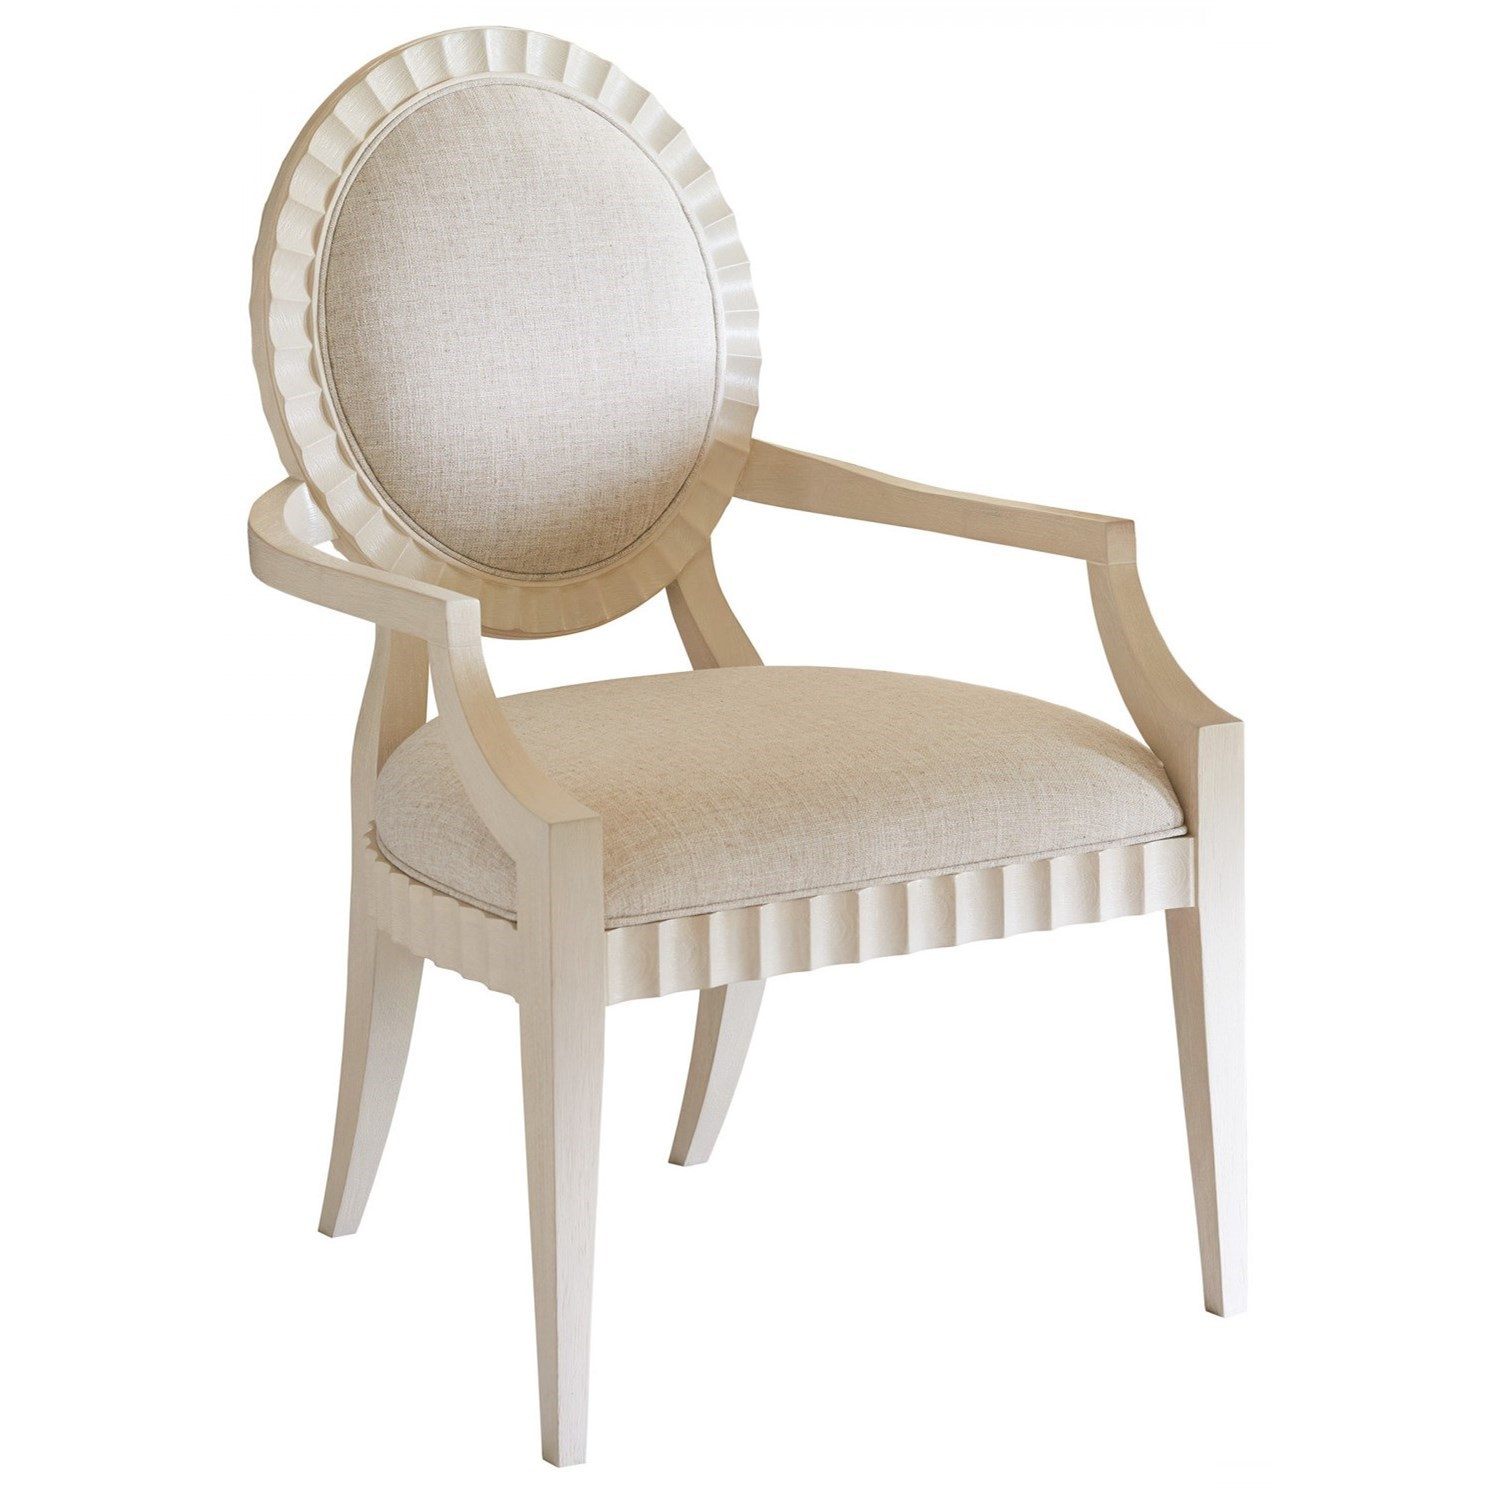 Traditional Gilmore Desk Chair with Upholstered Seat and Back